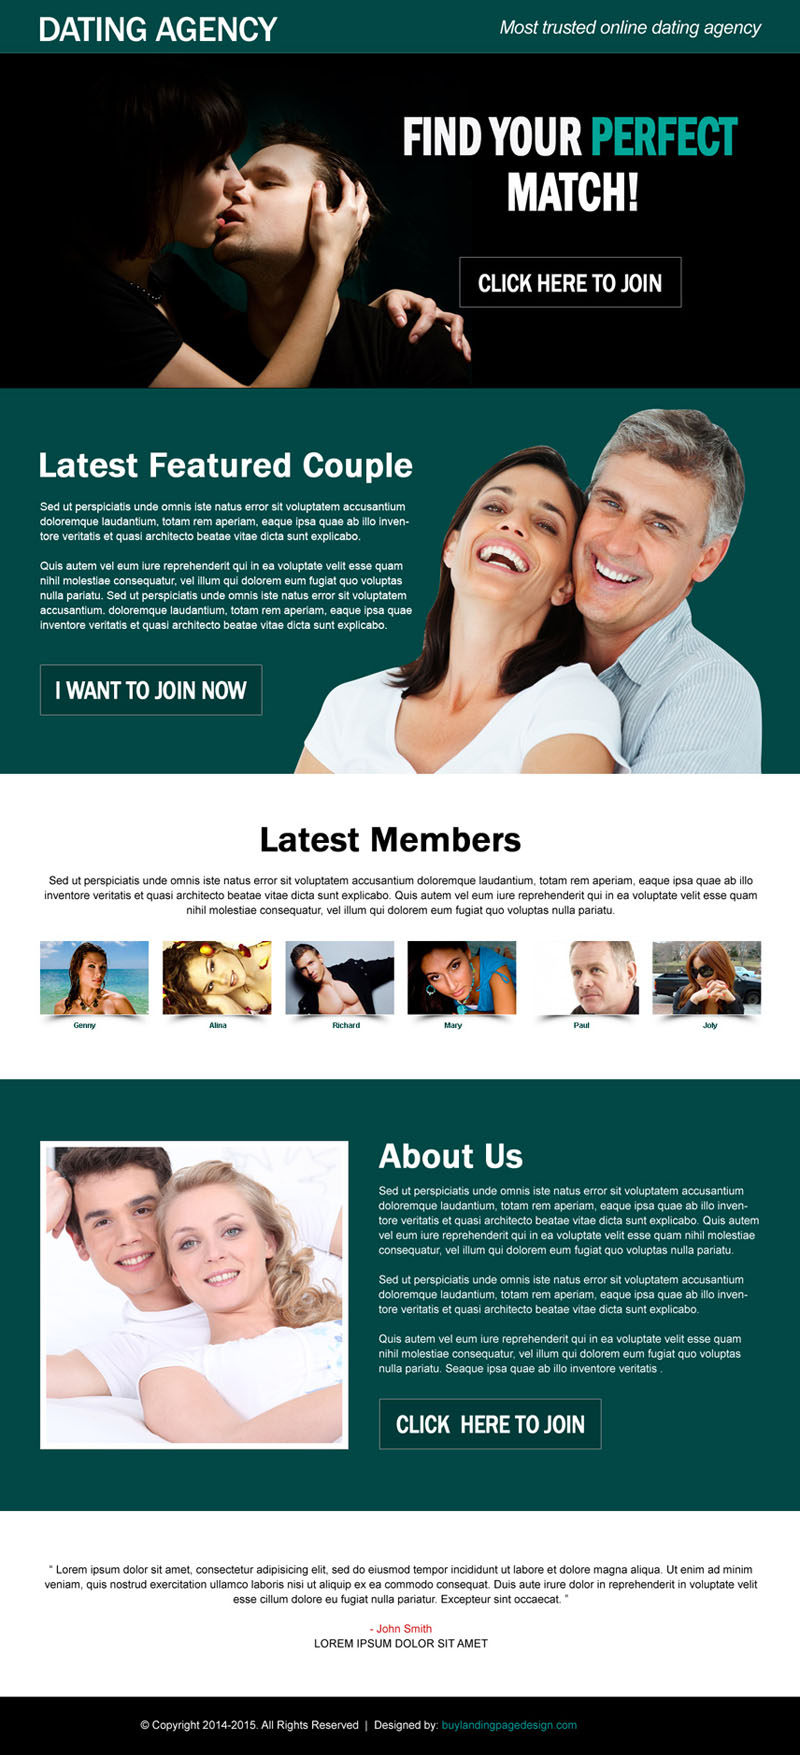 perfect-match-online-dating-agency-join-now-opportunity-call-to-action-landing-page-design-template-025